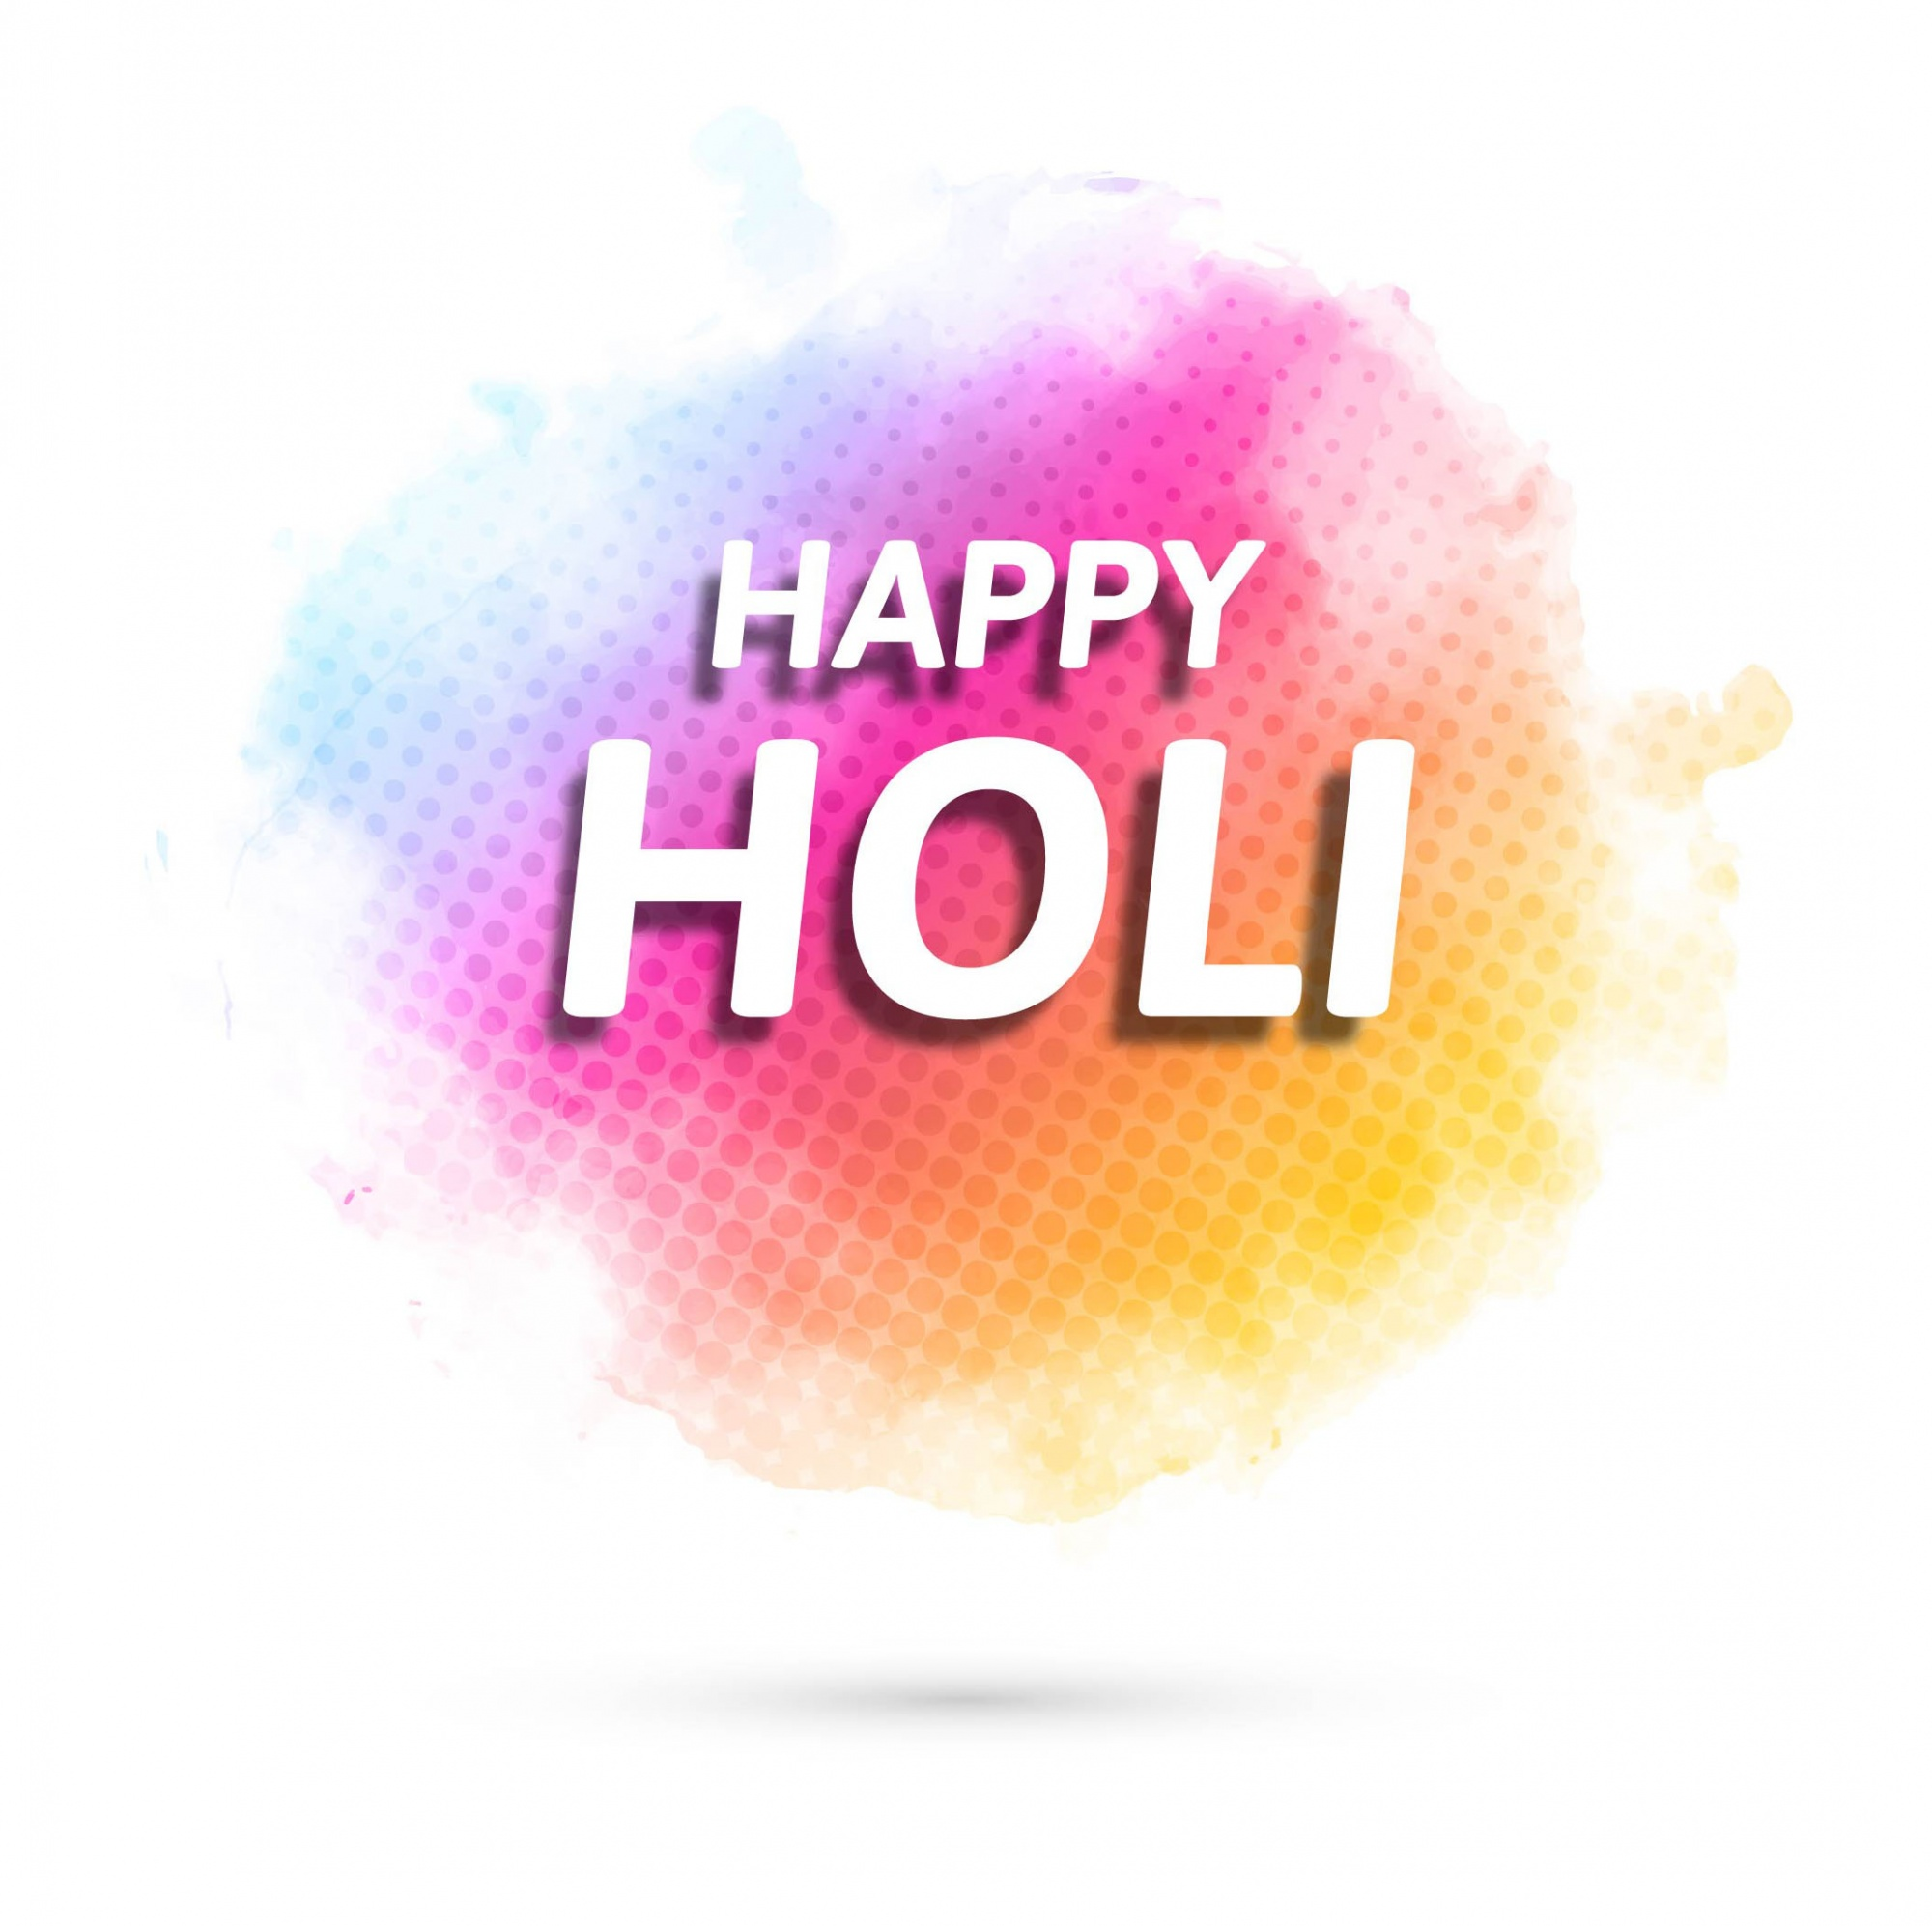 Background with watercolor texture for holi festival